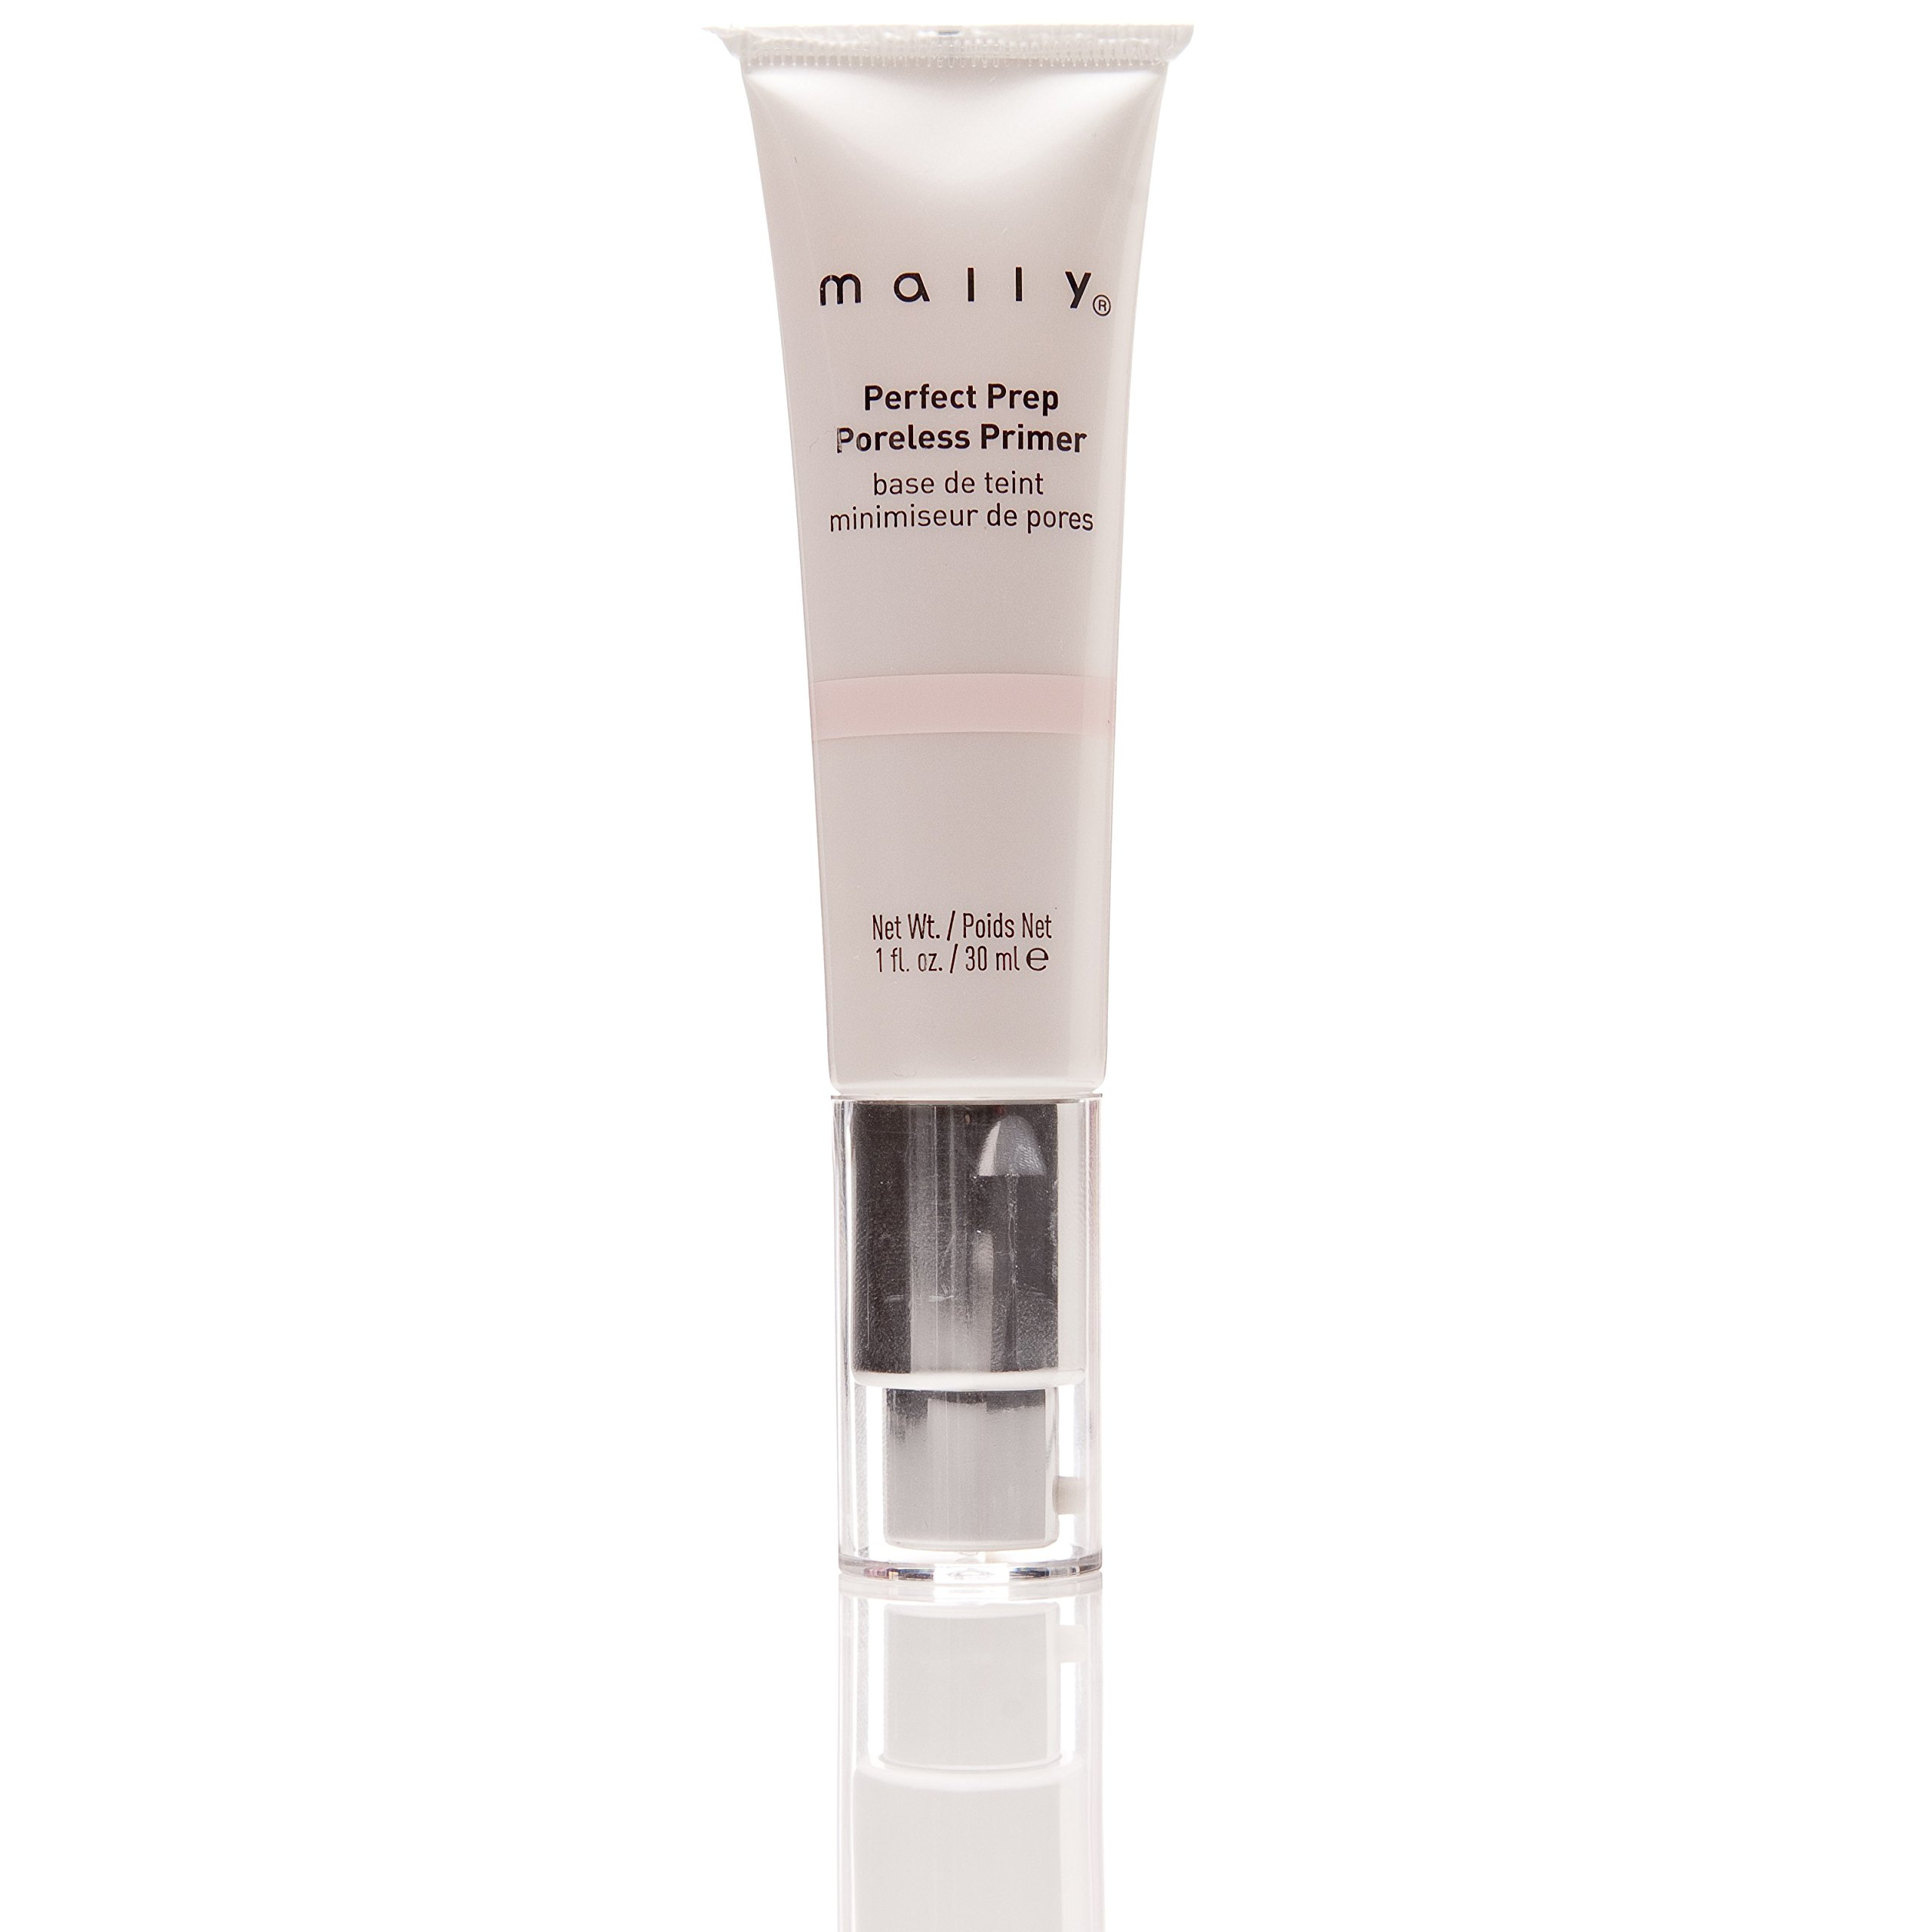 Mally Beauty - Perfect Prep Poreless Primer - Hydrates & Minimizes Look Fine Lines, Wrinkles, Pores - 1 Ounce - MY.2082 by Mally Beauty